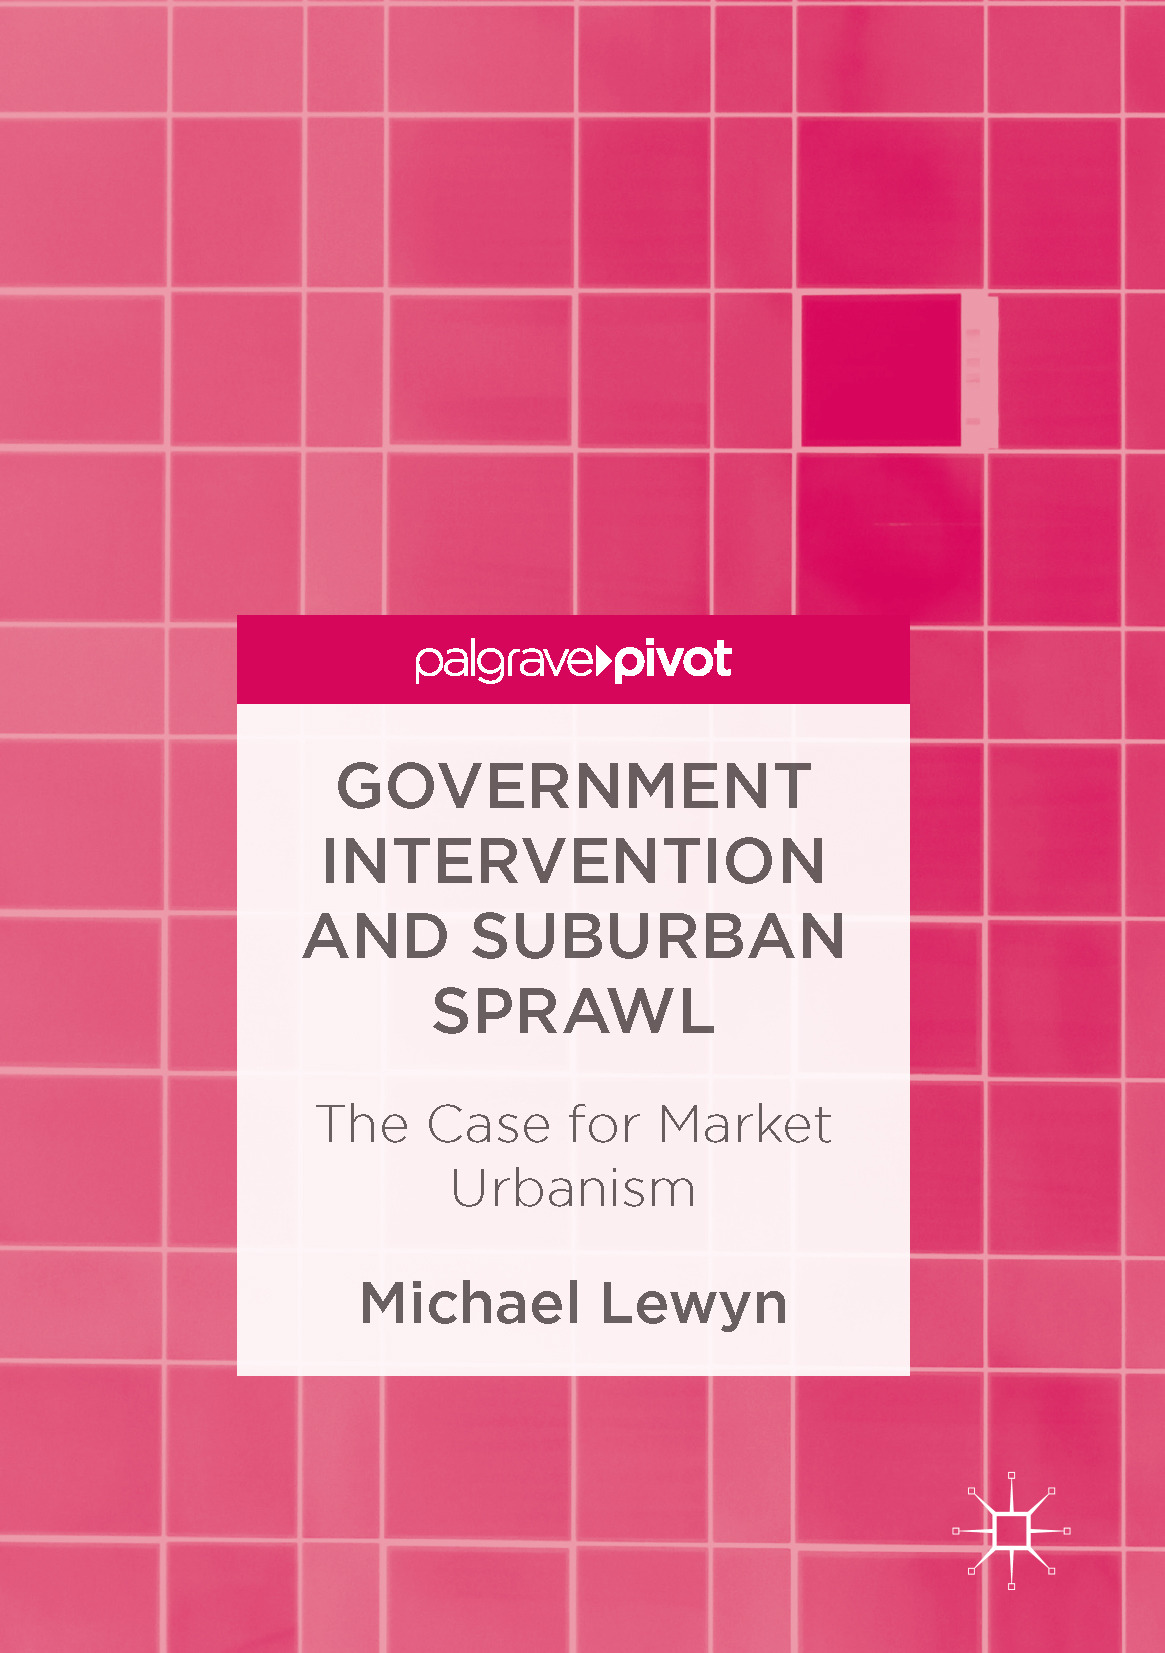 Lewyn, Michael - Government Intervention and Suburban Sprawl, ebook